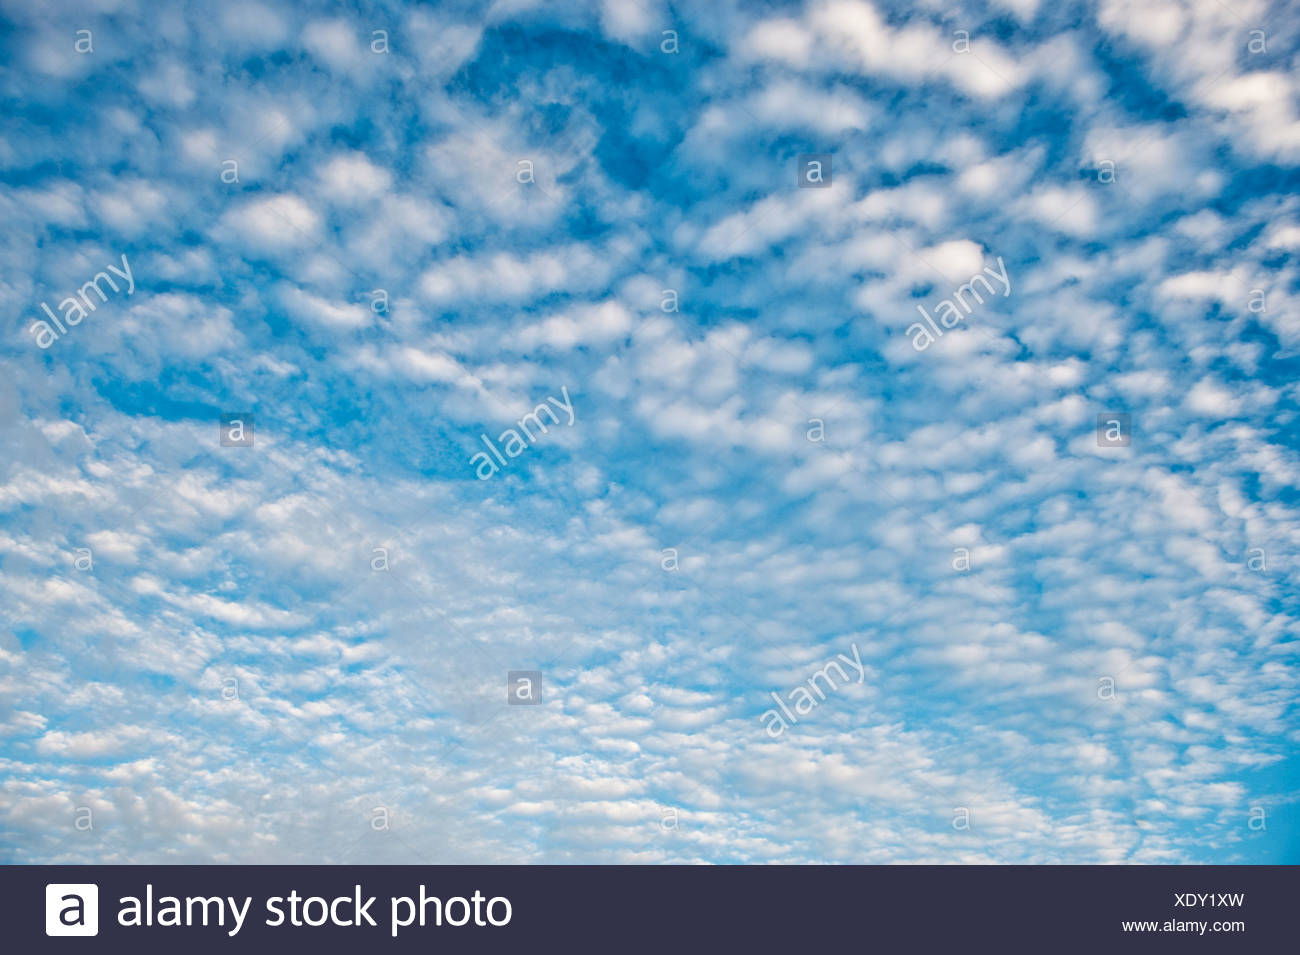 Sky and clouds. - Stock Image